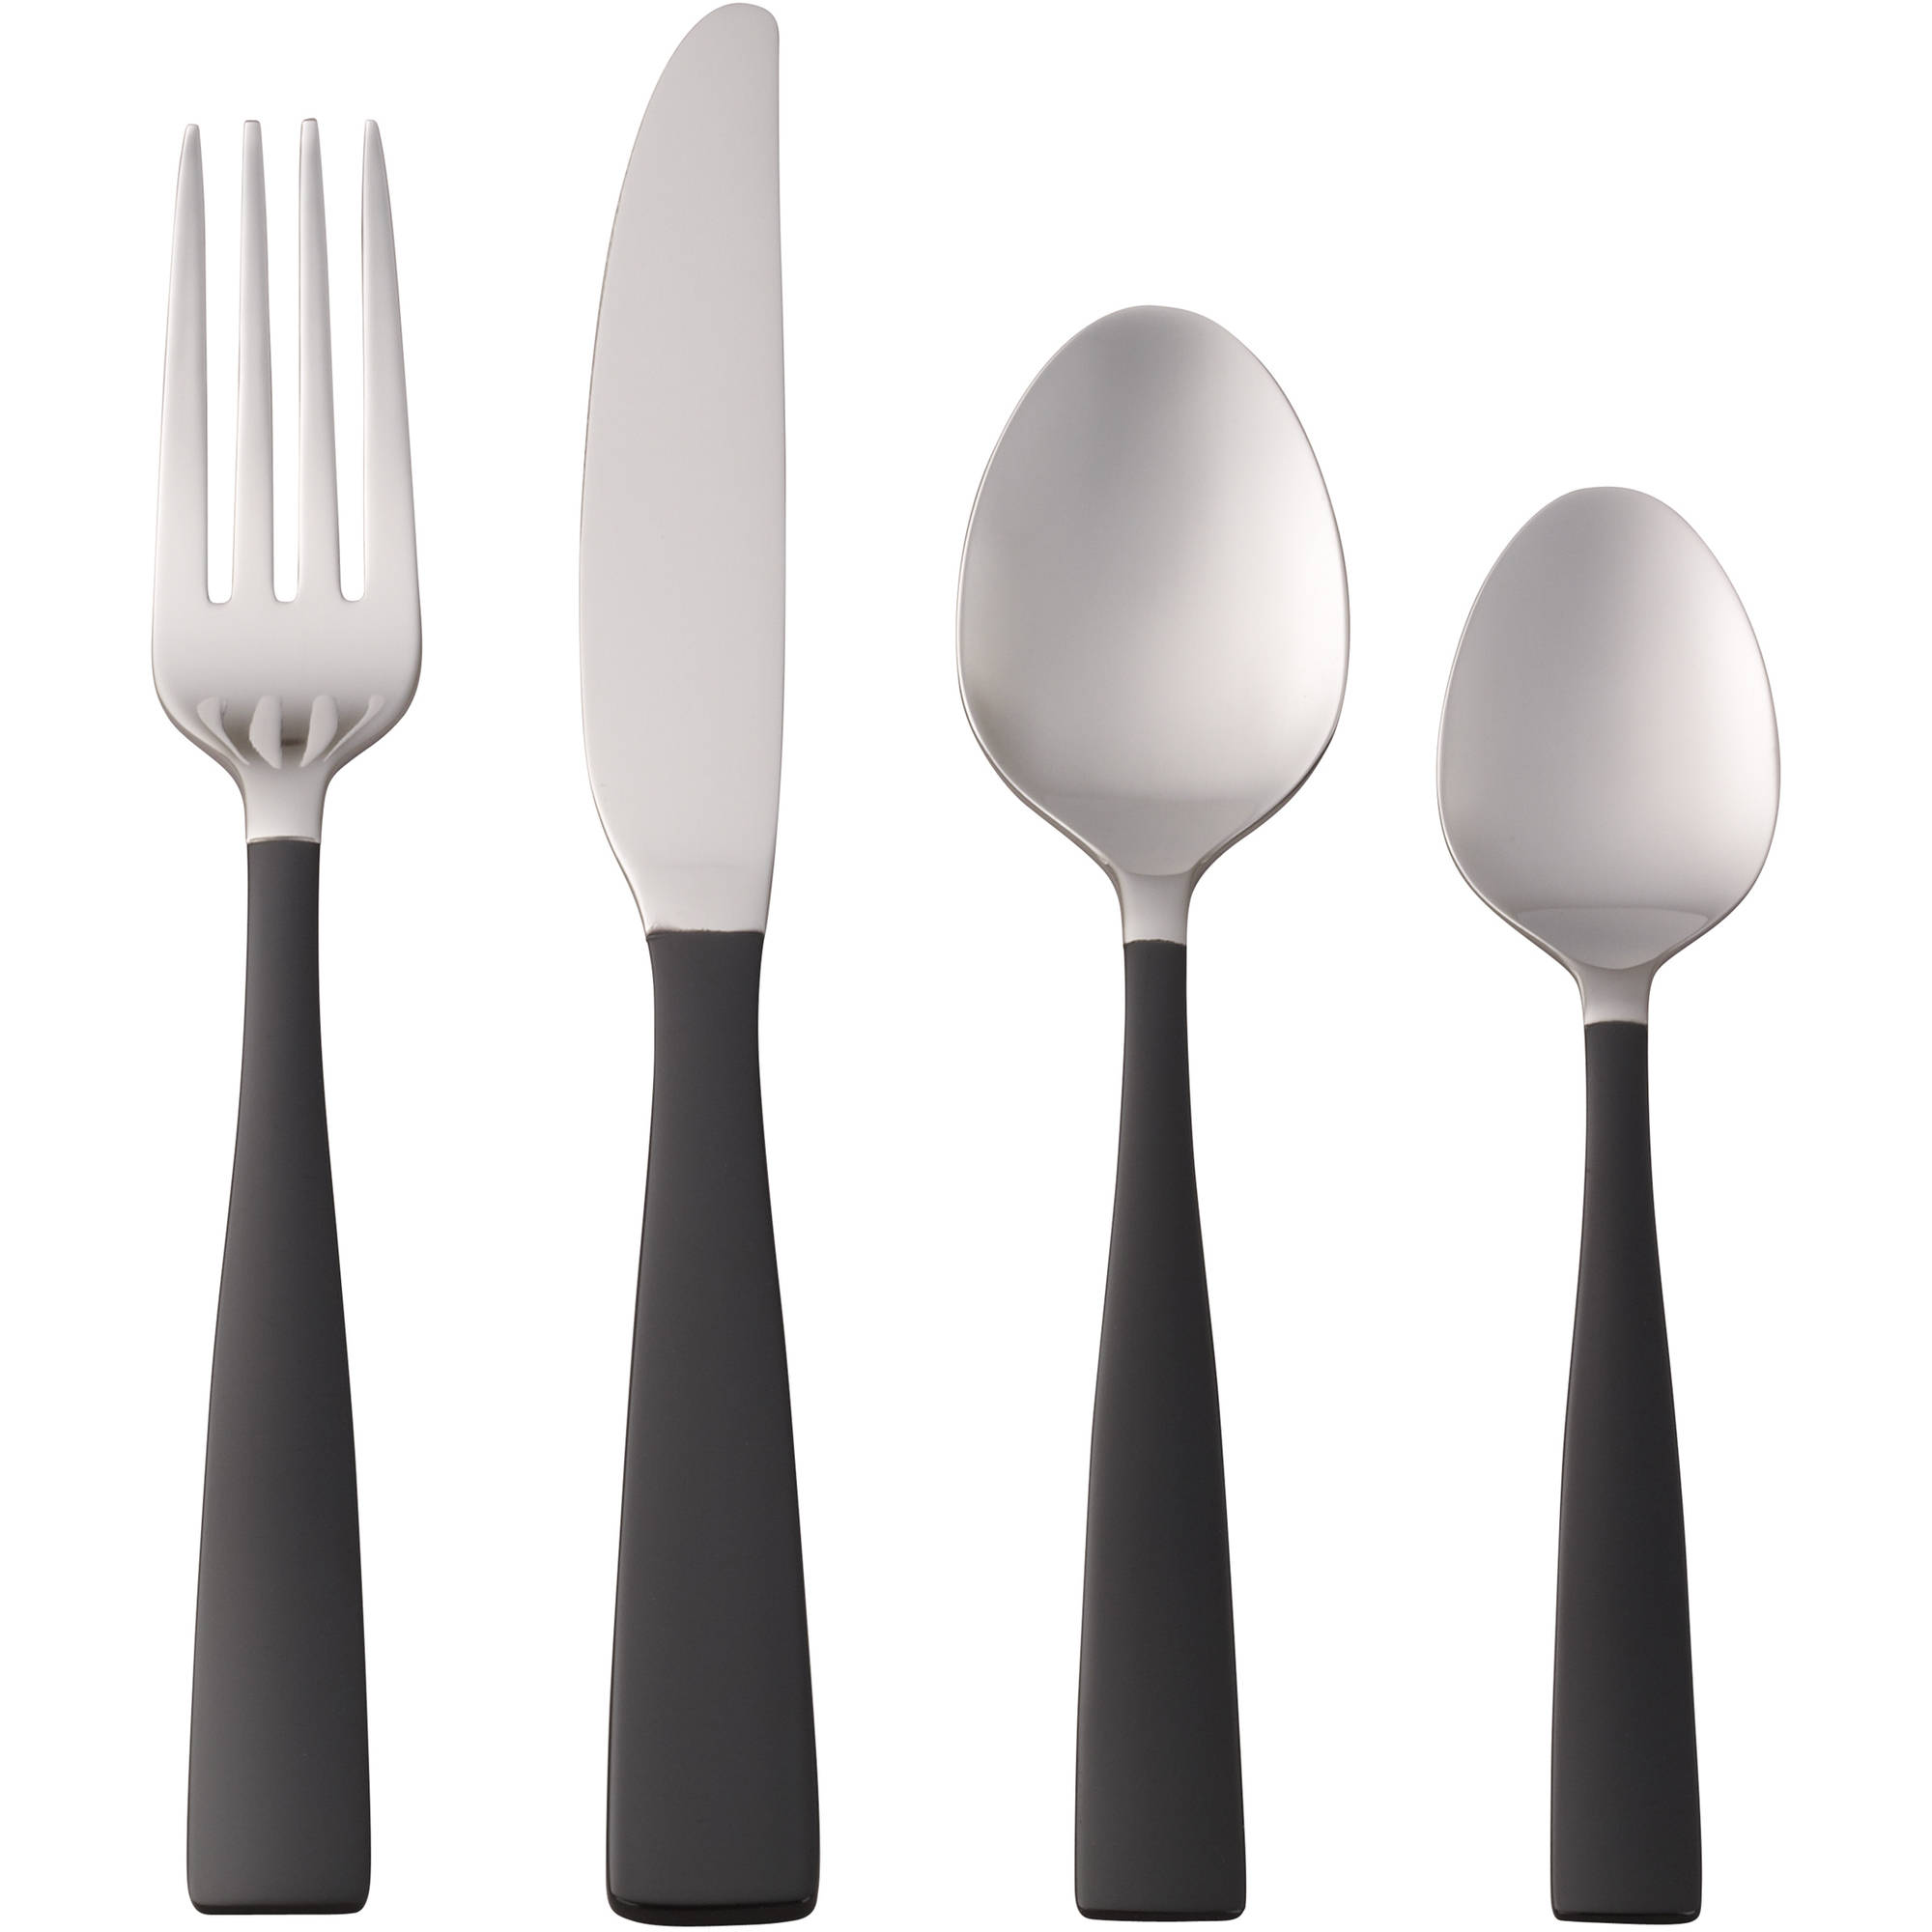 Better Homes and Gardens Urban 16-Piece Flatware Set by